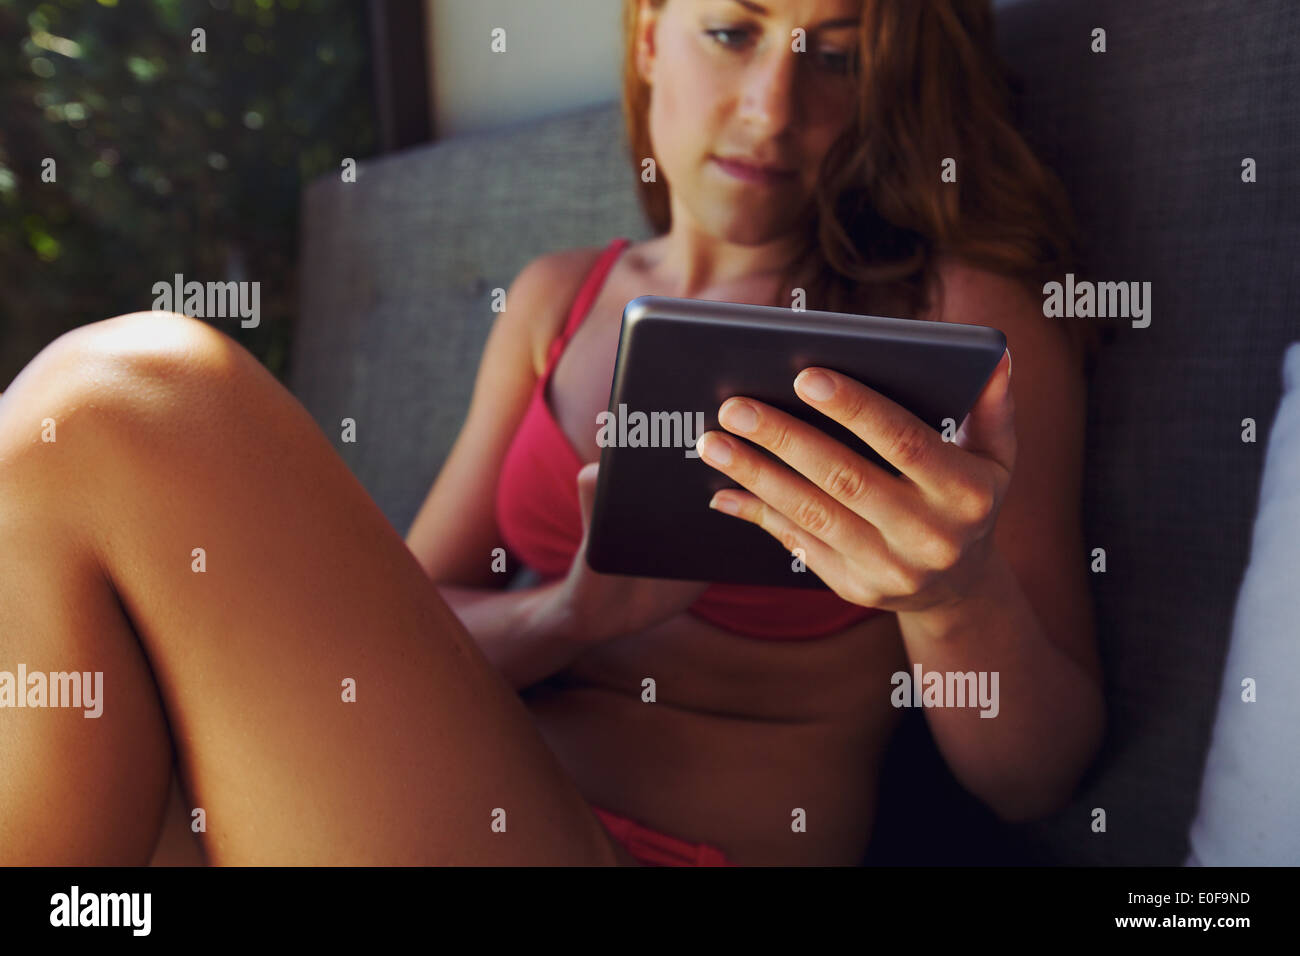 Closeup image of young female model using digital tablet. Young caucasian woman in bikini sitting on couch using tablet computer - Stock Image